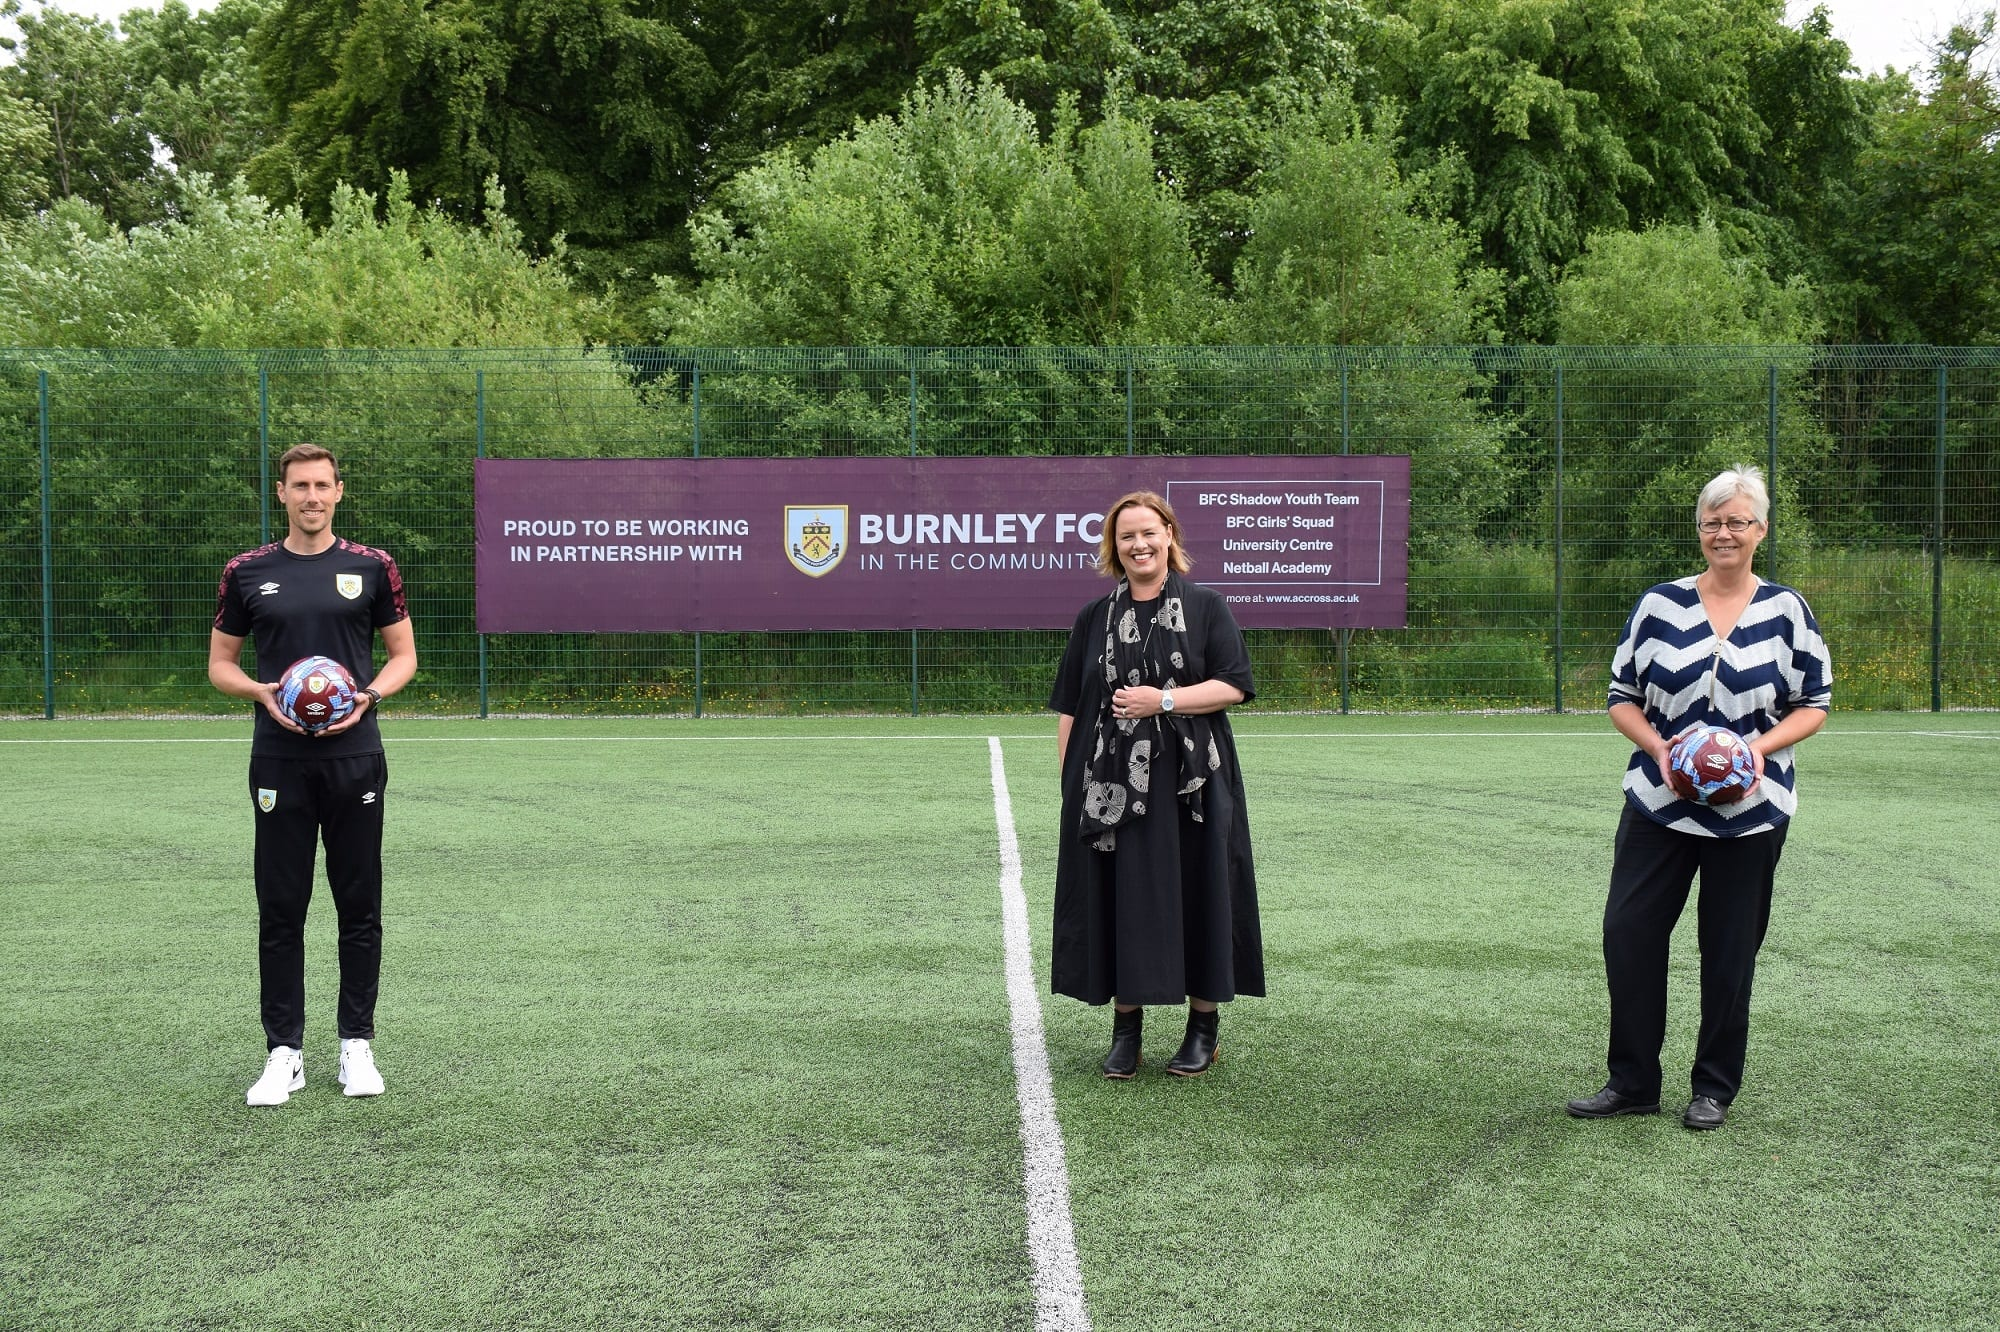 Chris Andrews and Dr Sara Ward, from Burnley FC in the Community, with Charlotte Scheffmann, Dean of Higher Education at Nelson and Colne College University Centre